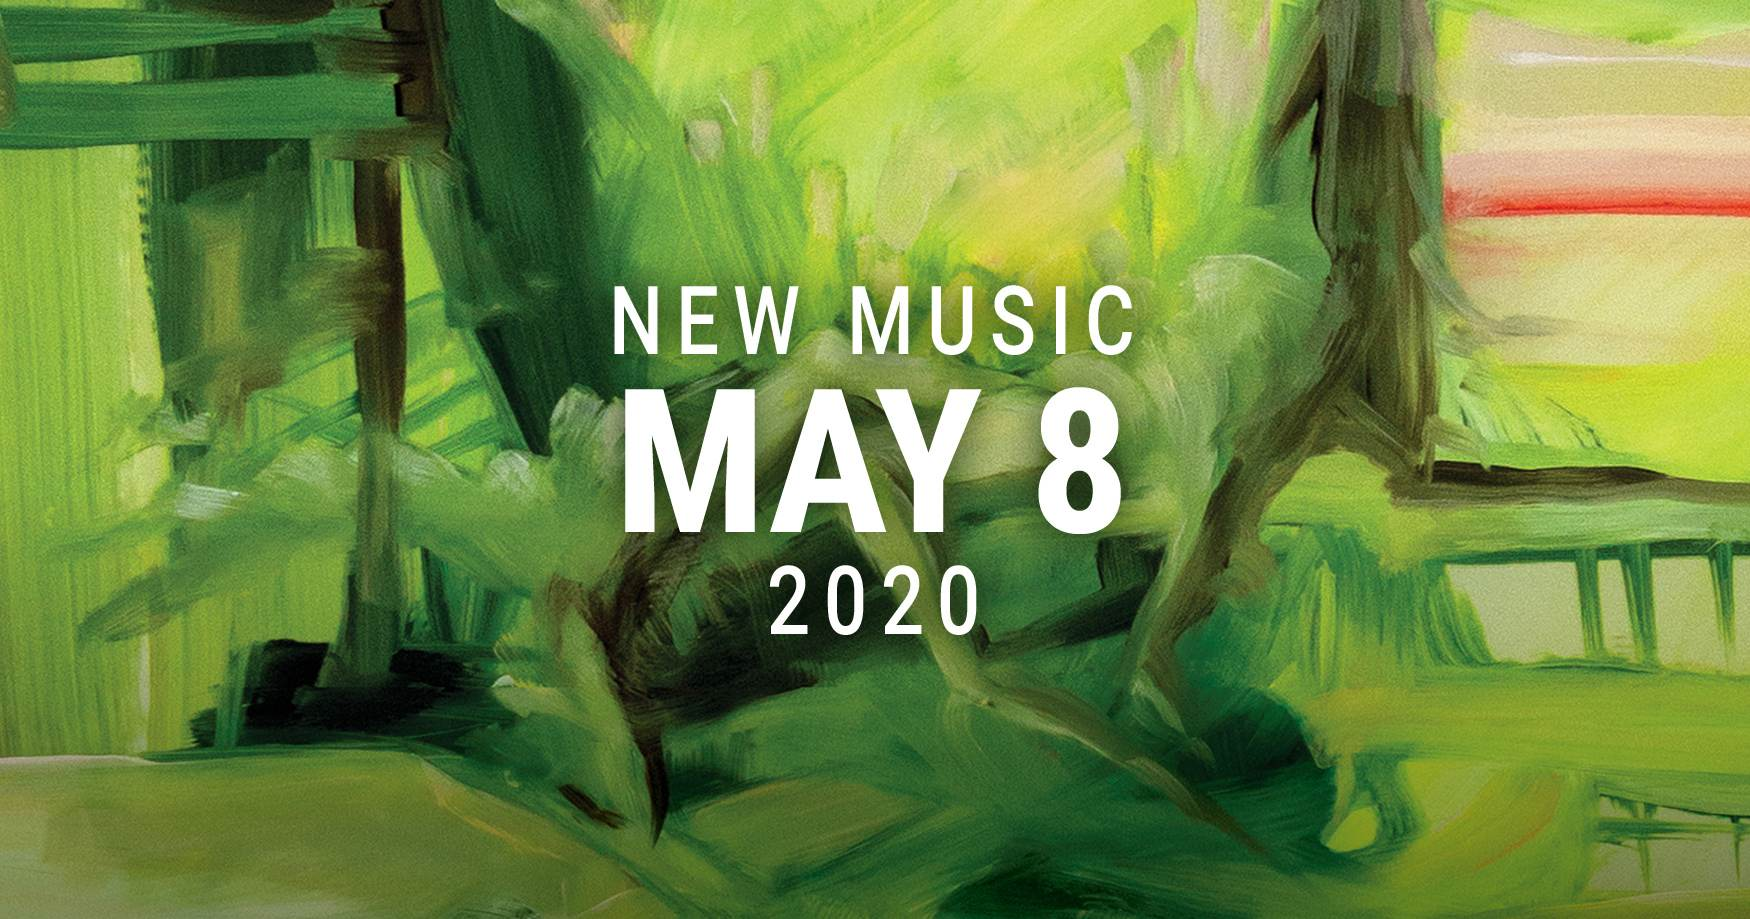 New Music May 8 2020